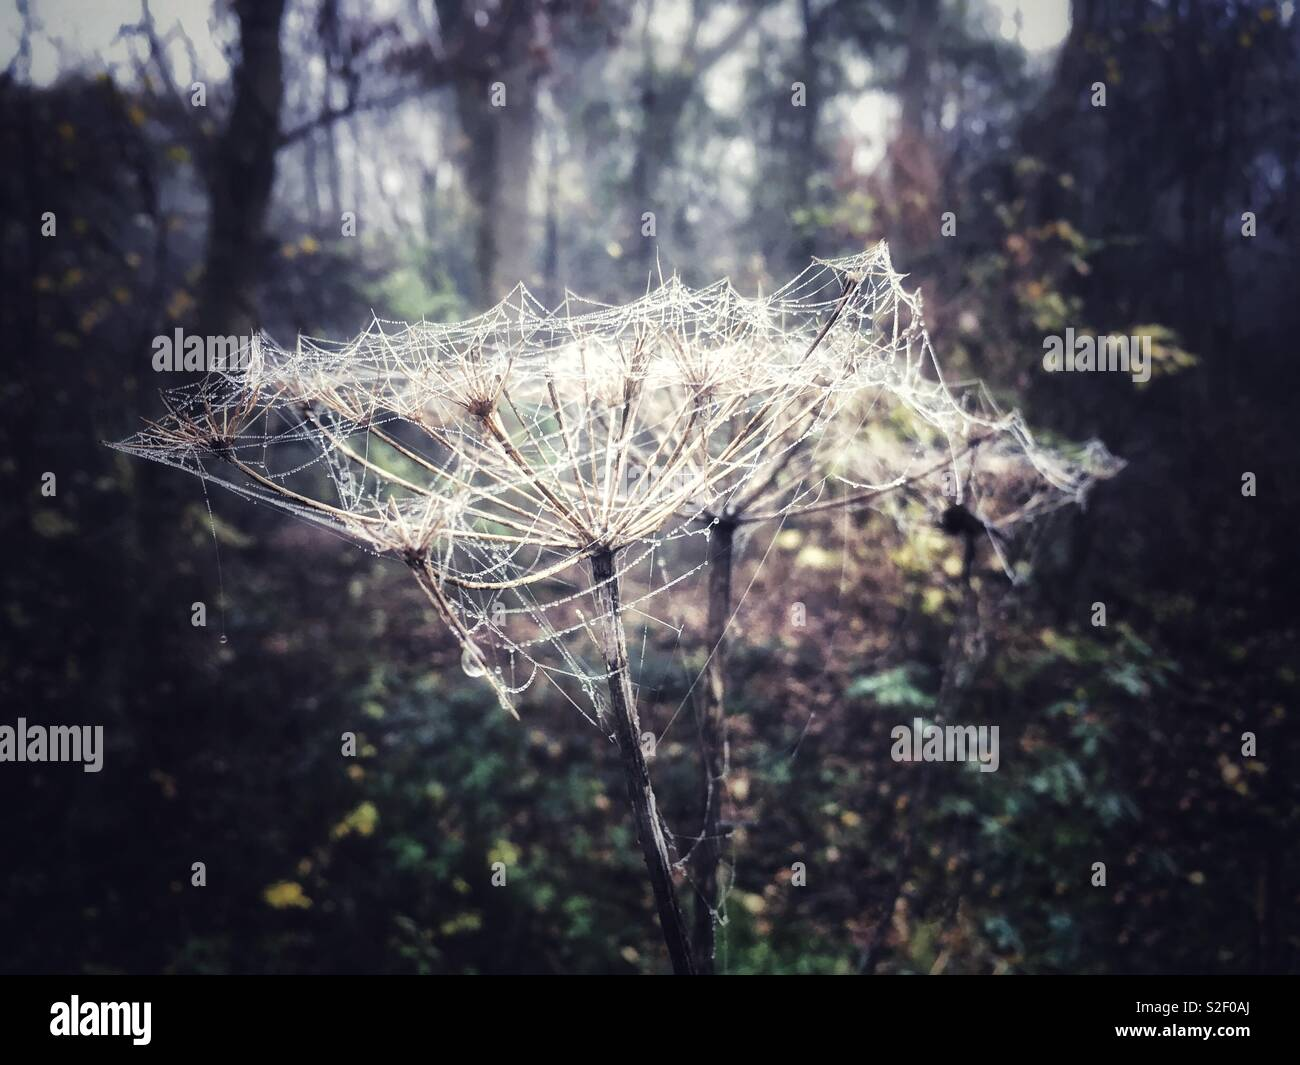 Spider's webs on seed heads. - Stock Image